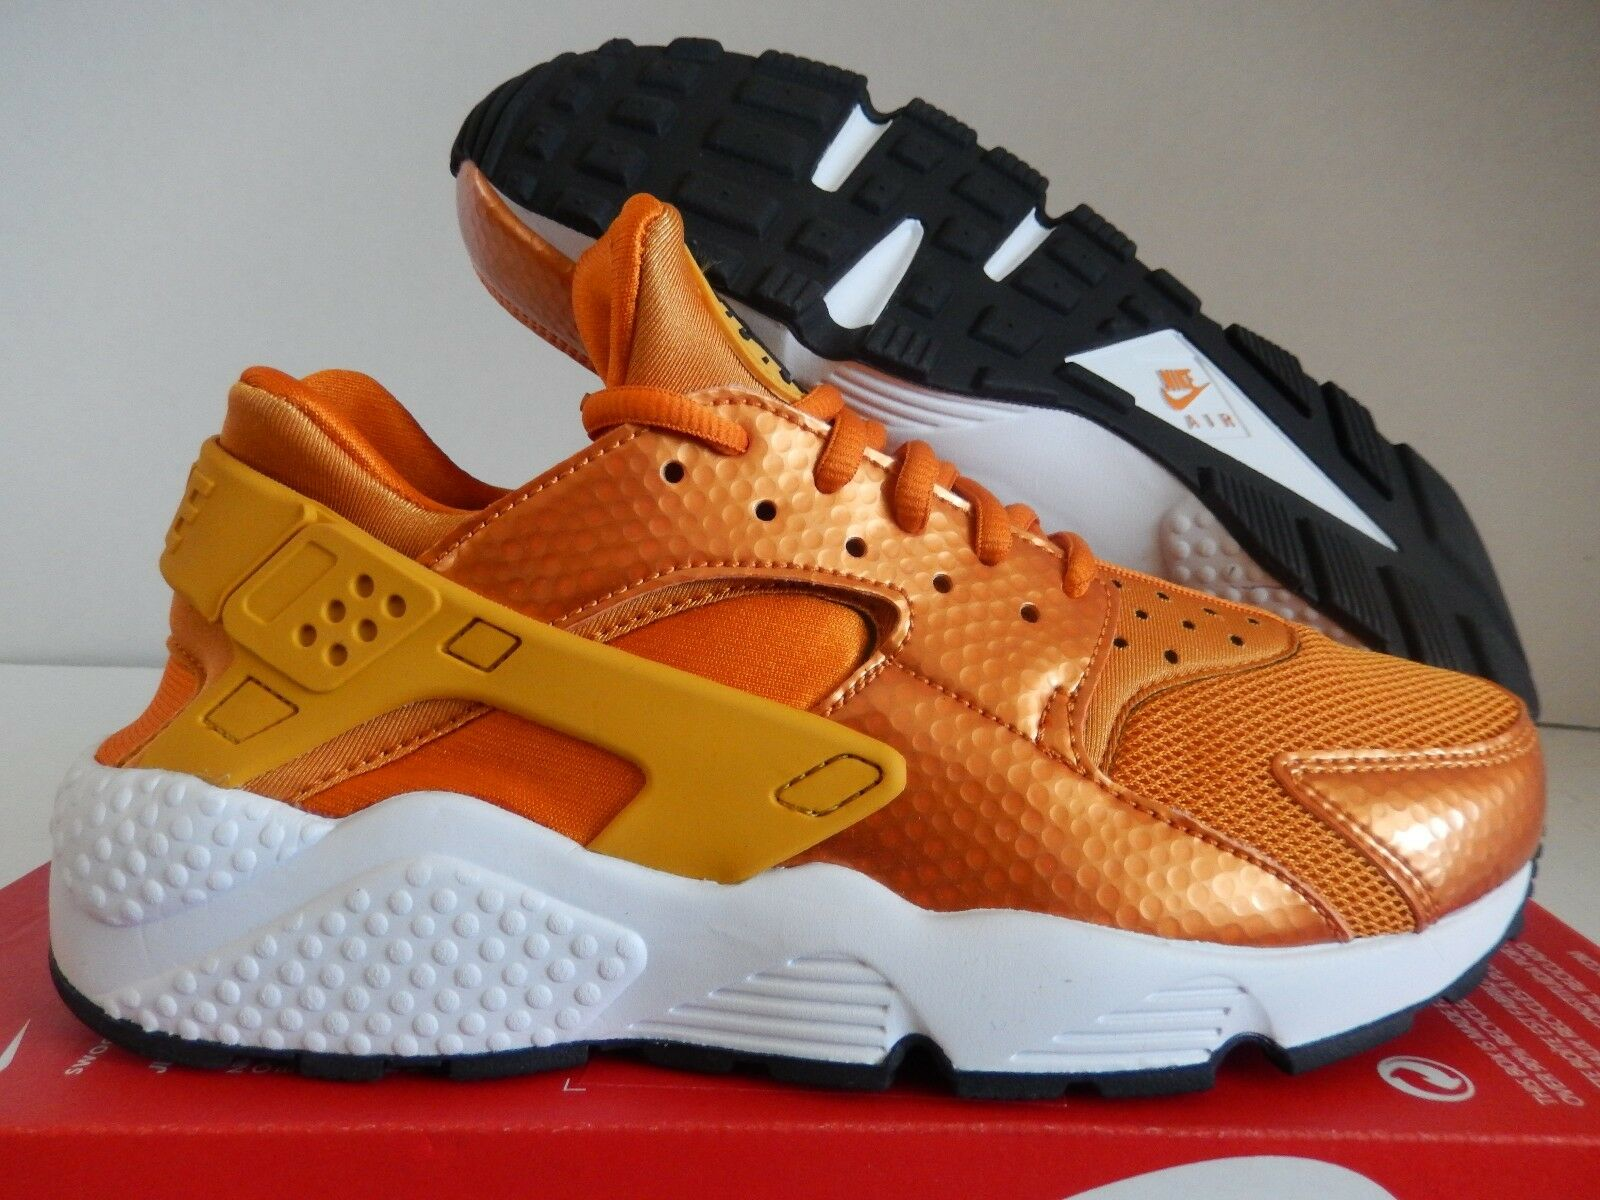 WMNS NIKE AIR HUARACHE RUN SUNSET-gold DART-WHITE-BLACK SZ SZ SZ 8 35614c